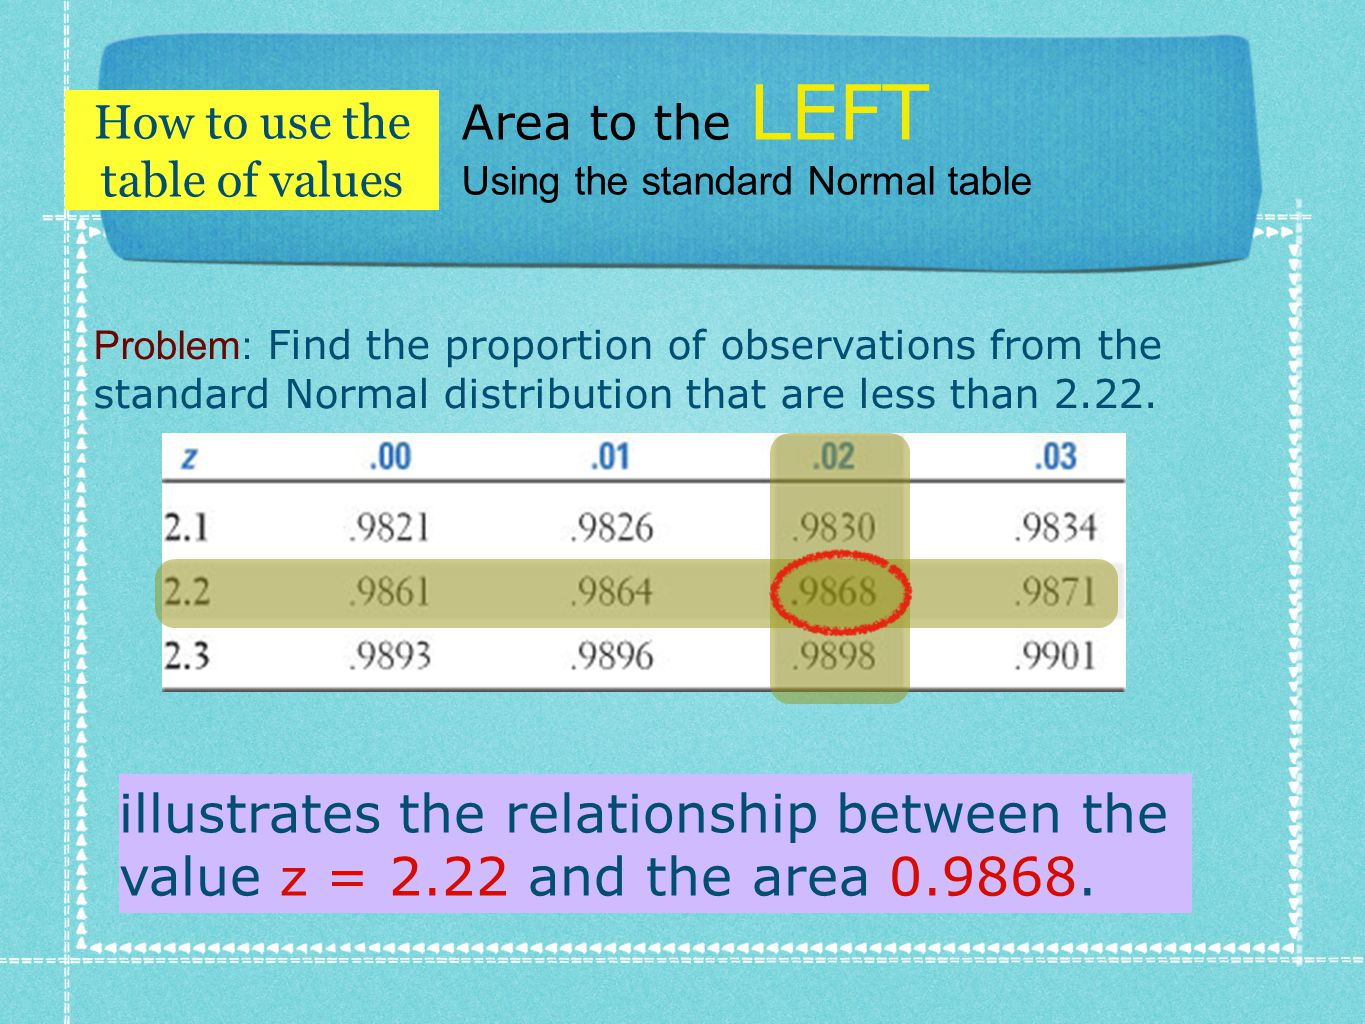 Area to the LEFT Using the standard Normal table Problem: Find the proportion of observations from the standard Normal distribution that are less than 2.22.